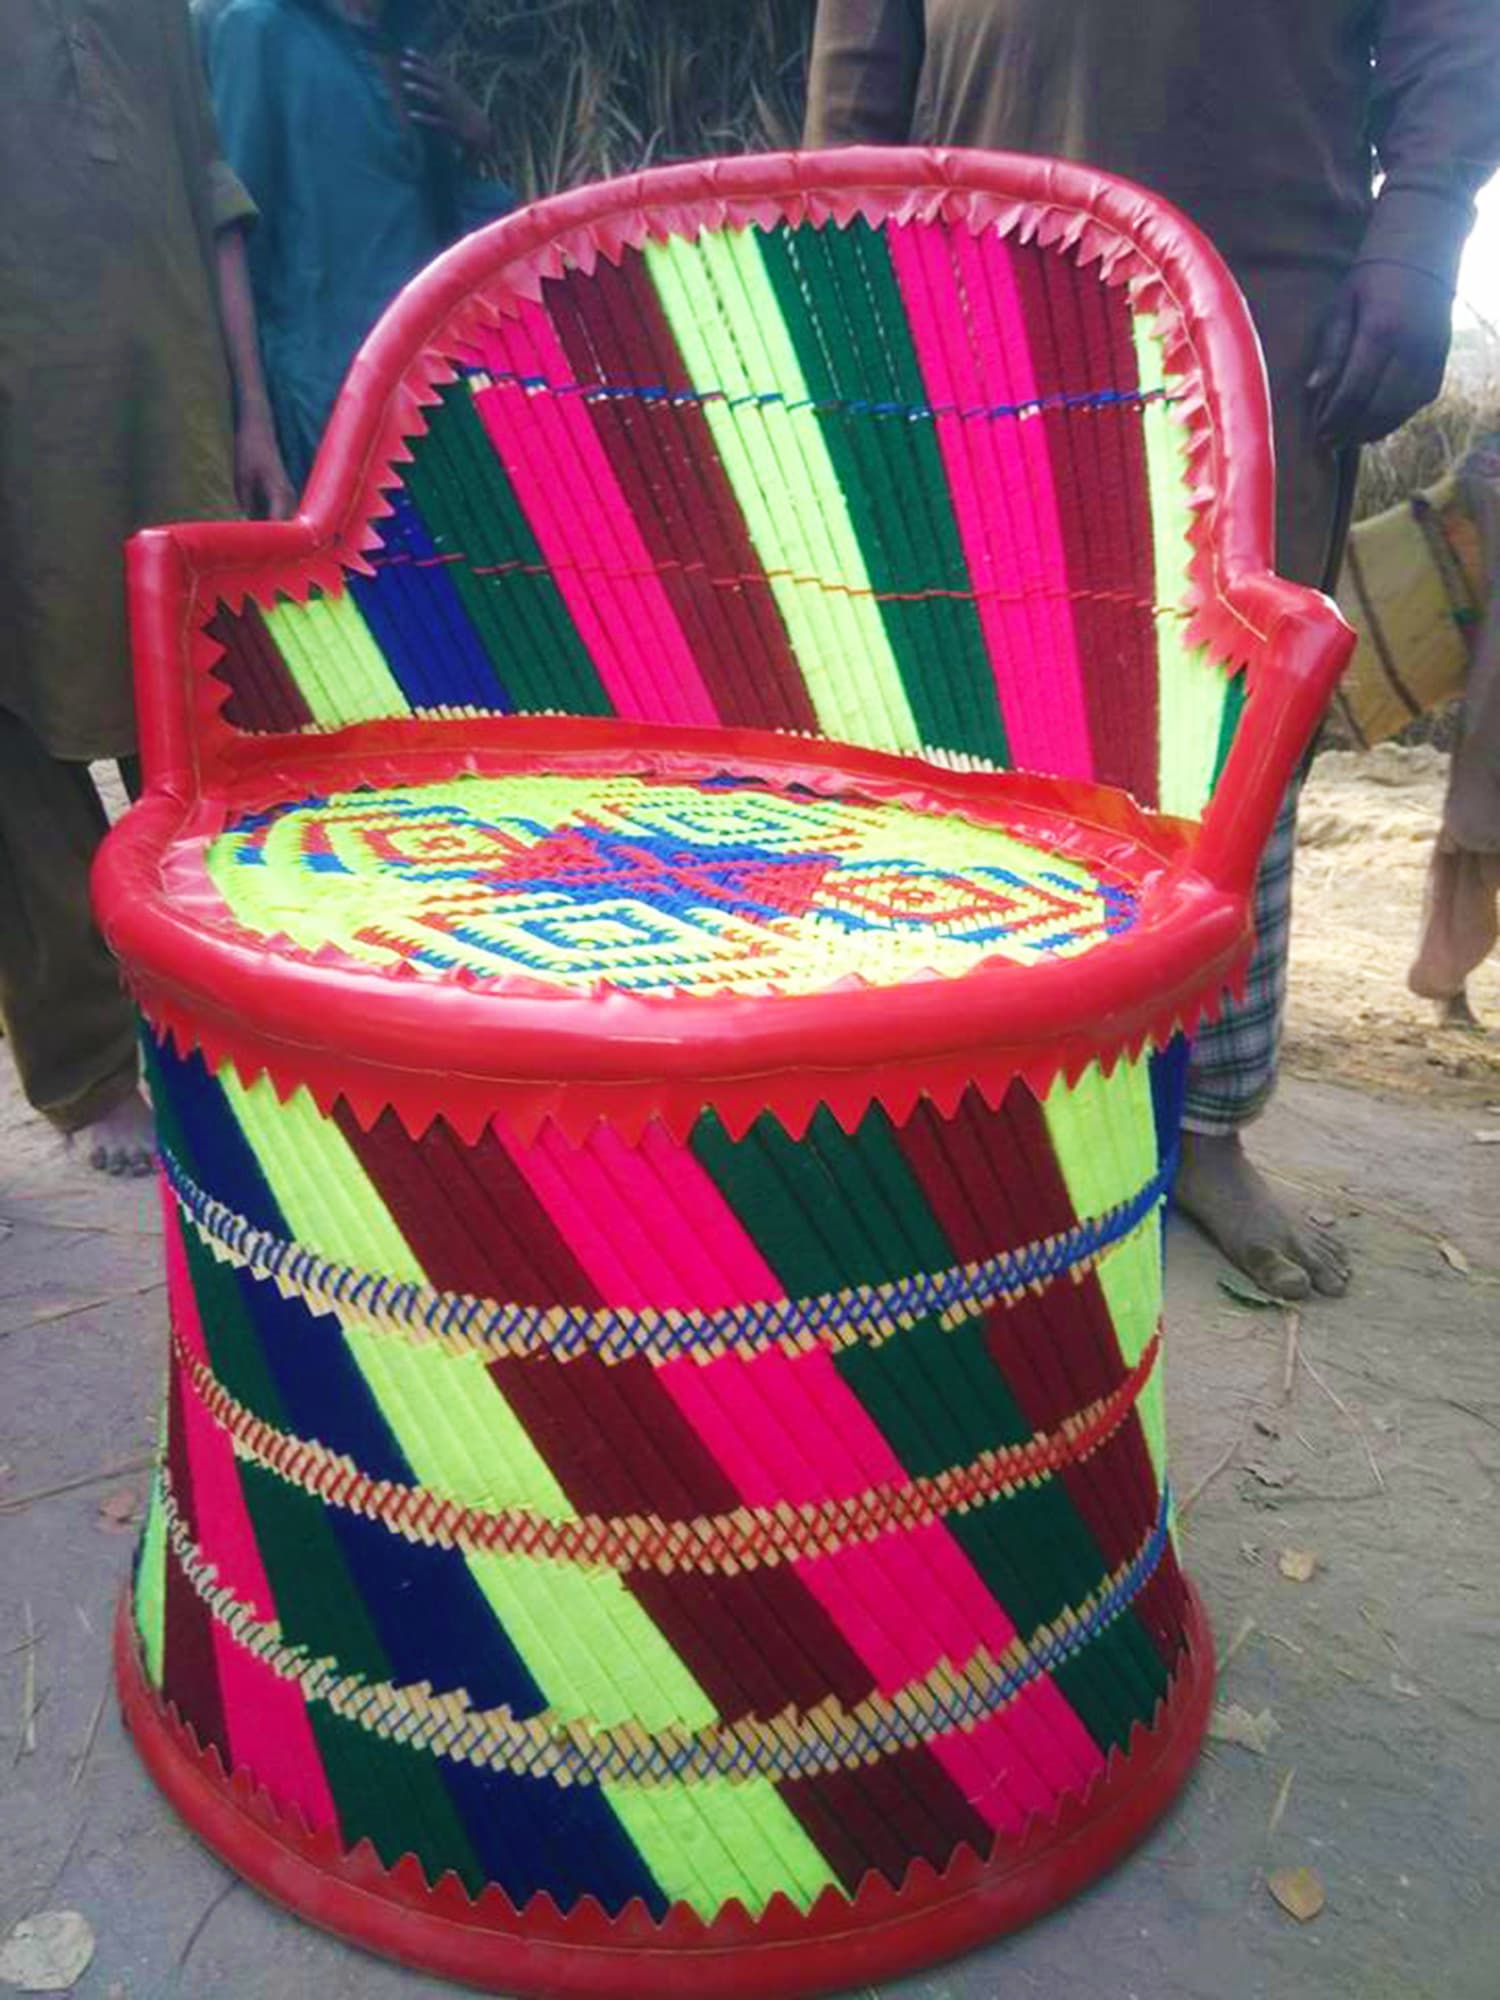 This Sindhi handicraft is the most common form of child labour in Khairpur.